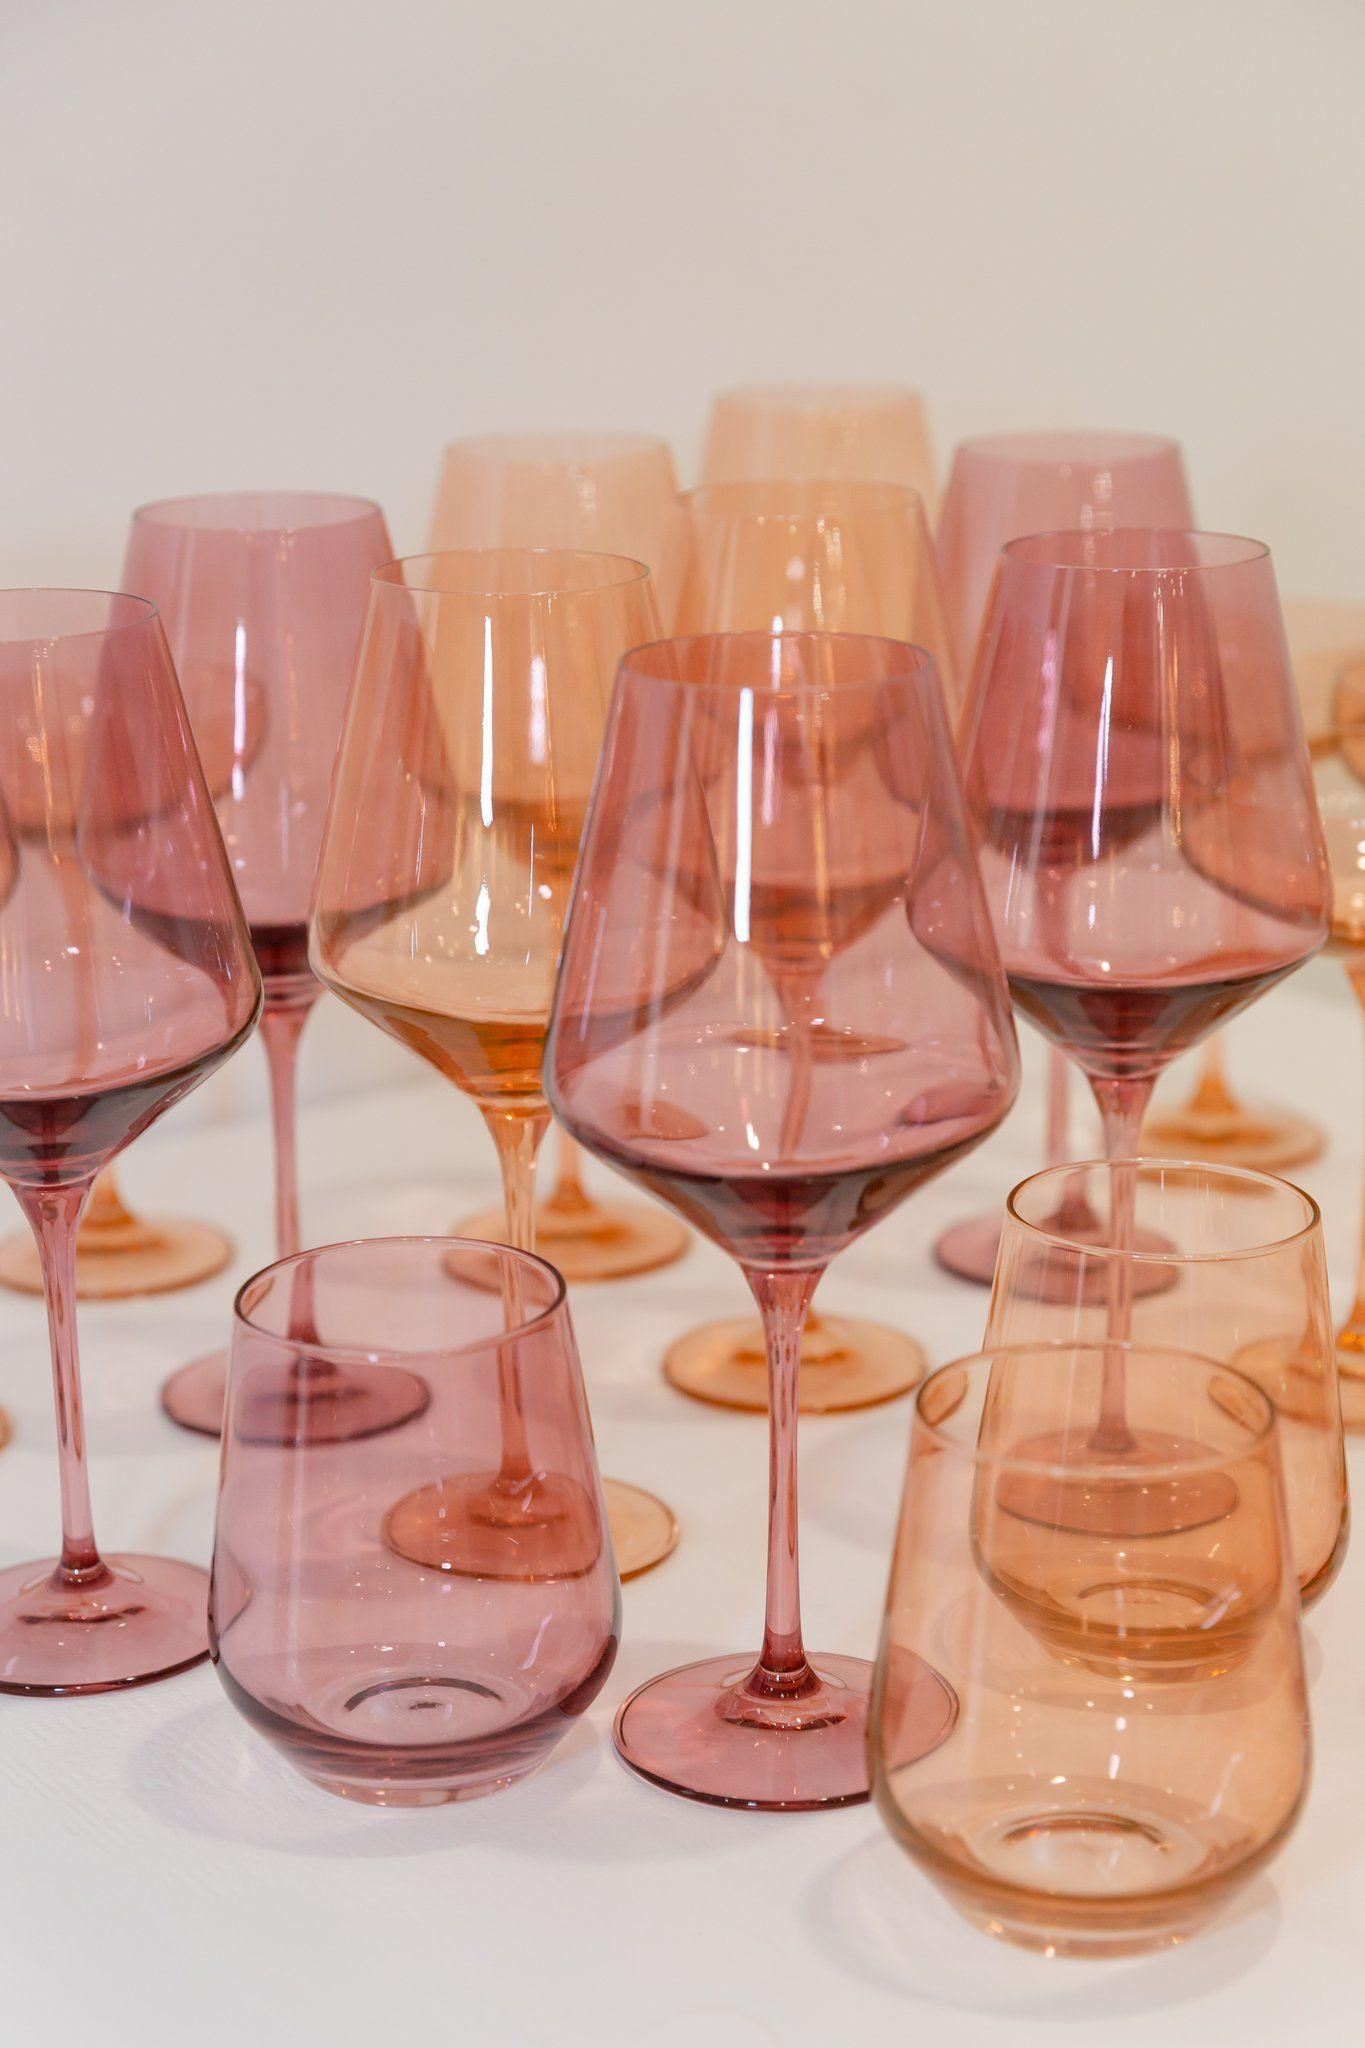 Estelle colored wine stemware - set of 6, $175 @estellecoloredglass.com